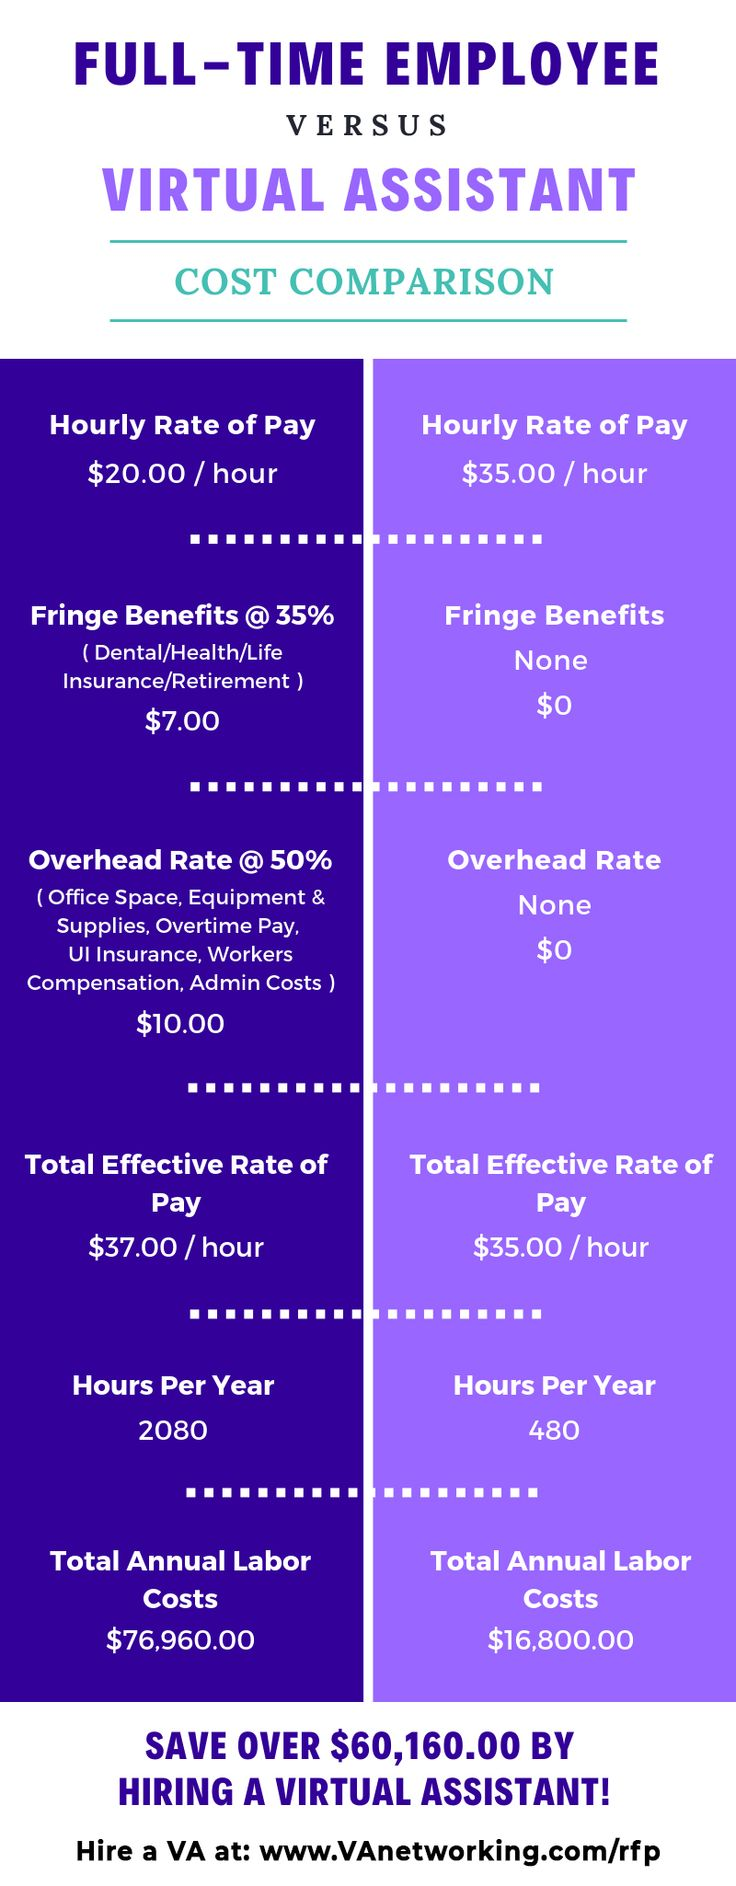 Cost Comparison FullTime Employee versus Virtual